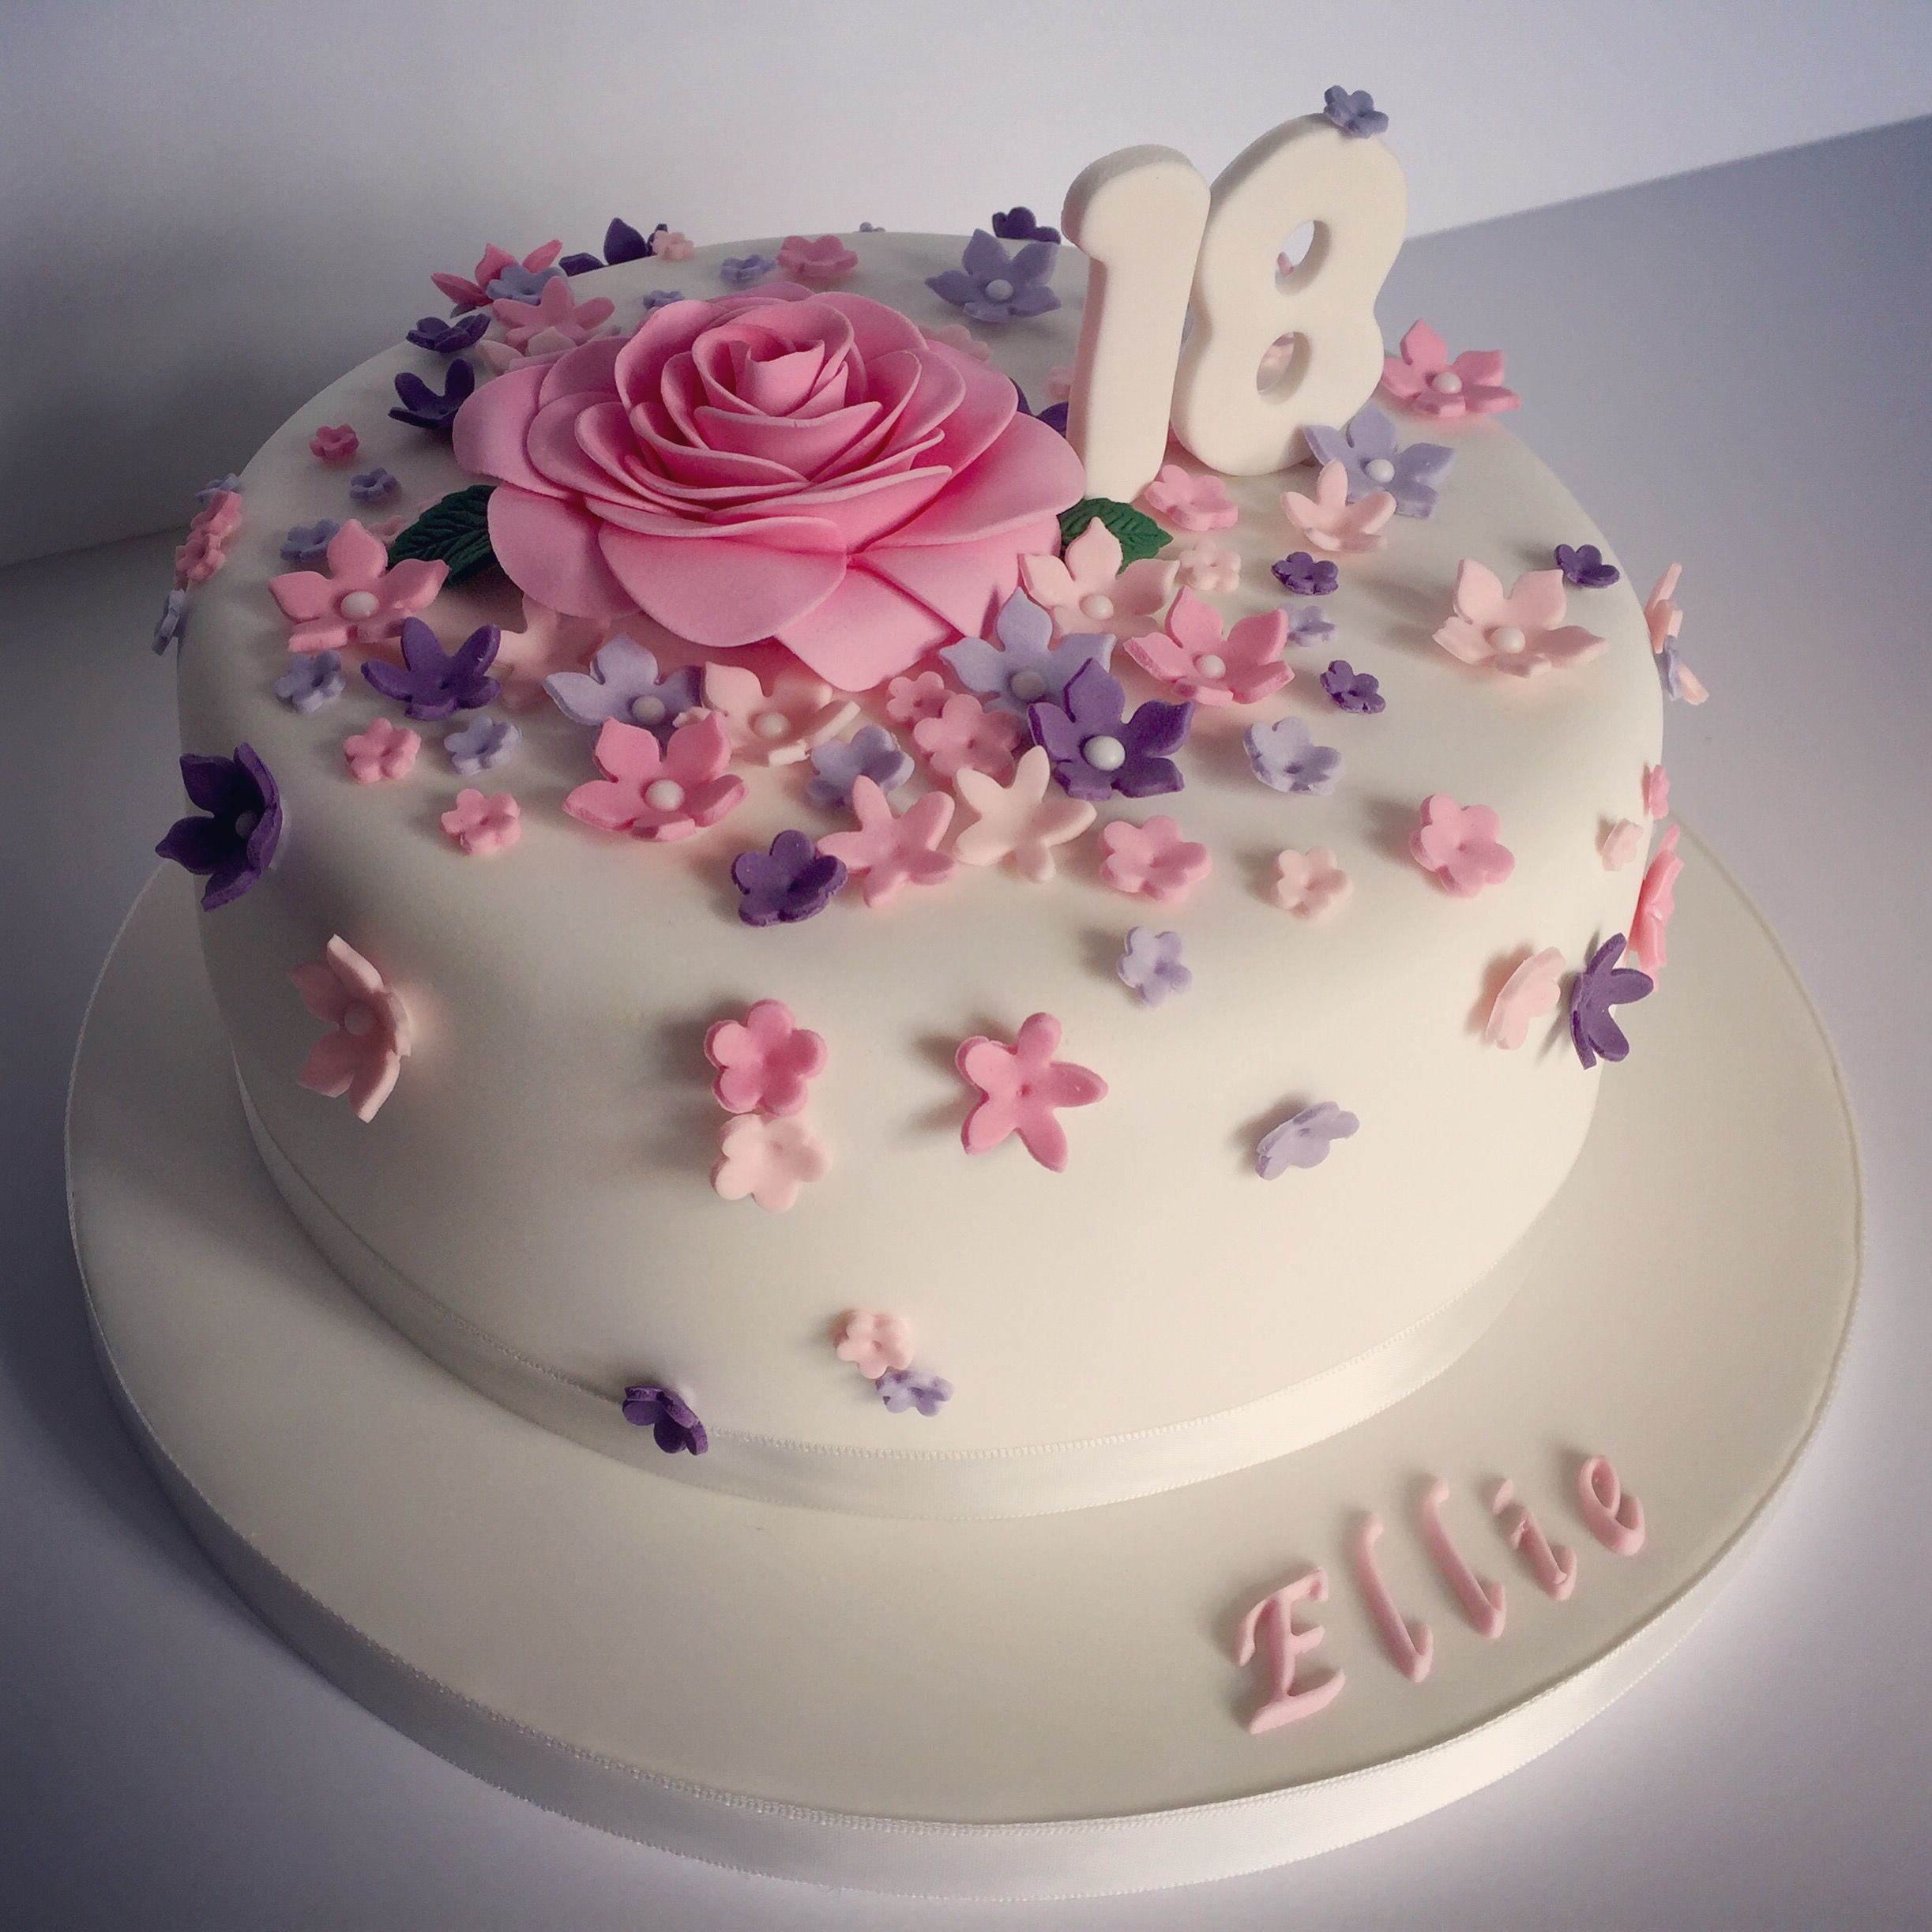 Pretty 18th birthday cake for pretty girl Design by Elina Prawito